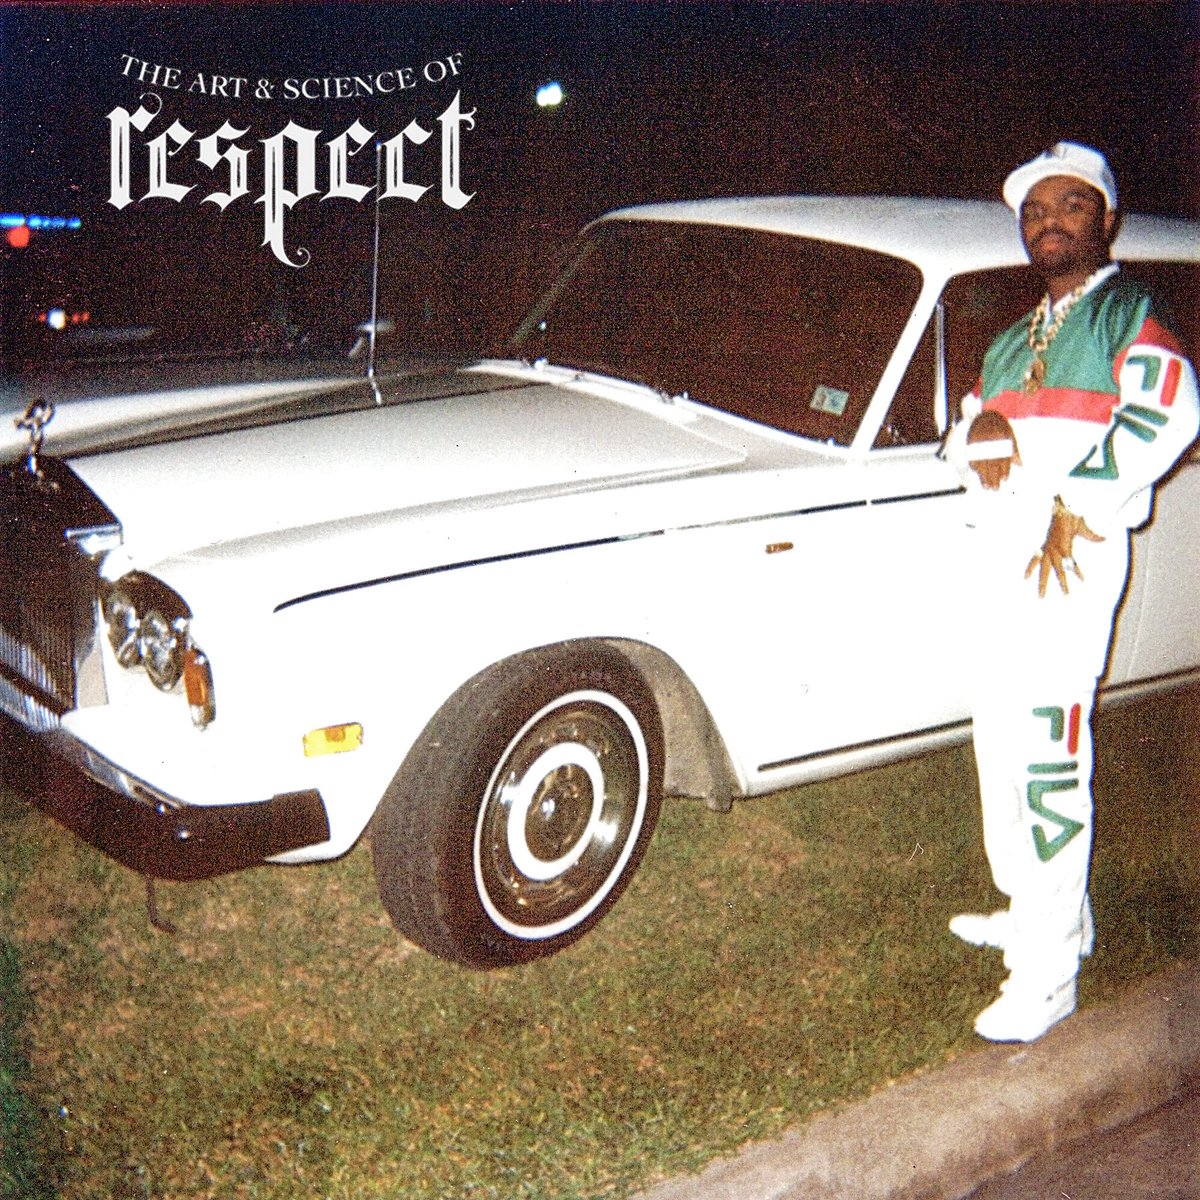 My first Rolls Royce // The Art & Science of Respect: A Memoir by James Prince (coming 2018) 📖